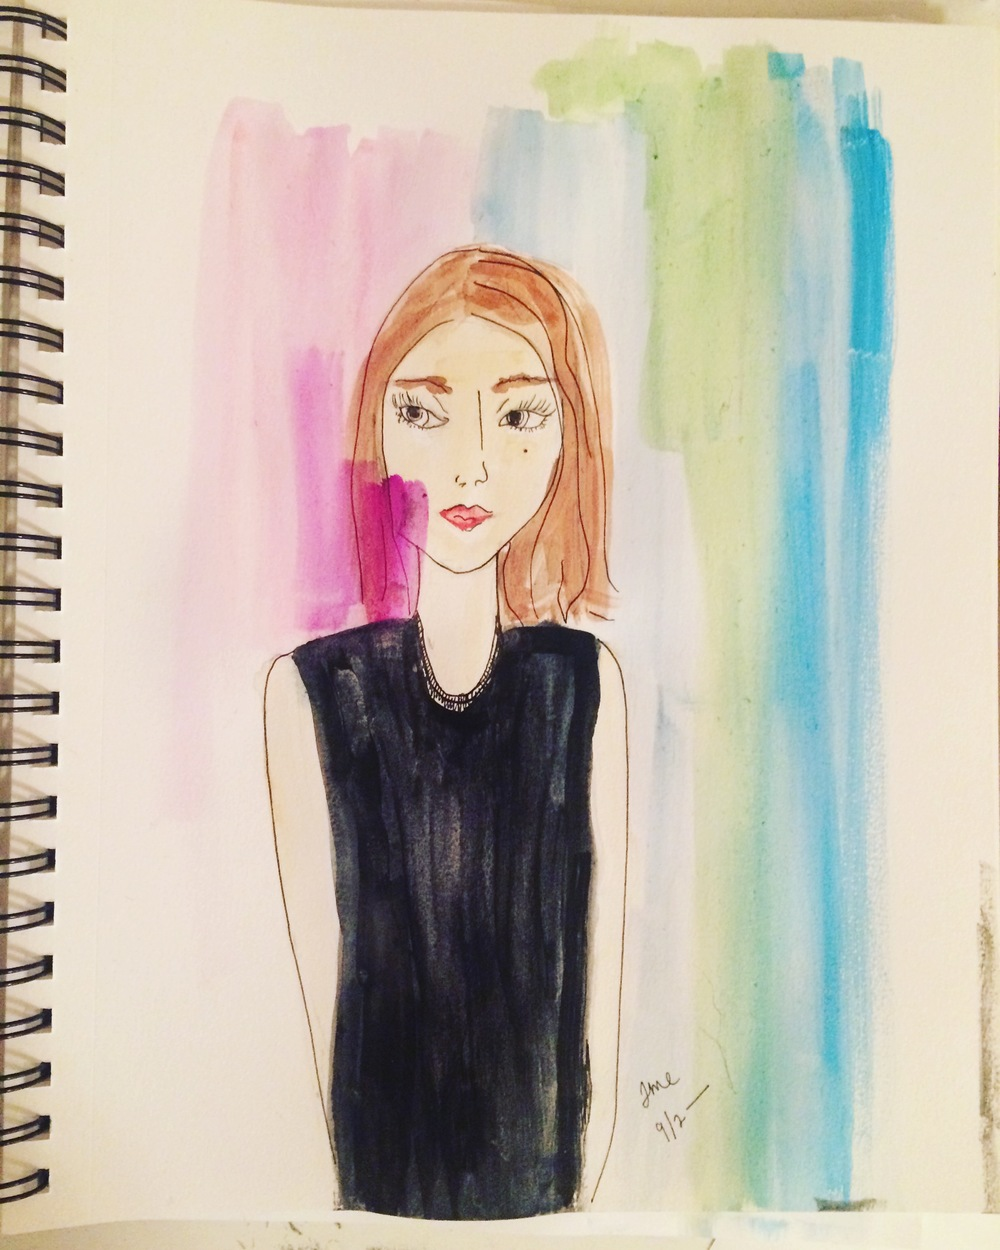 Here's a recent sketch/watercolor portrait.